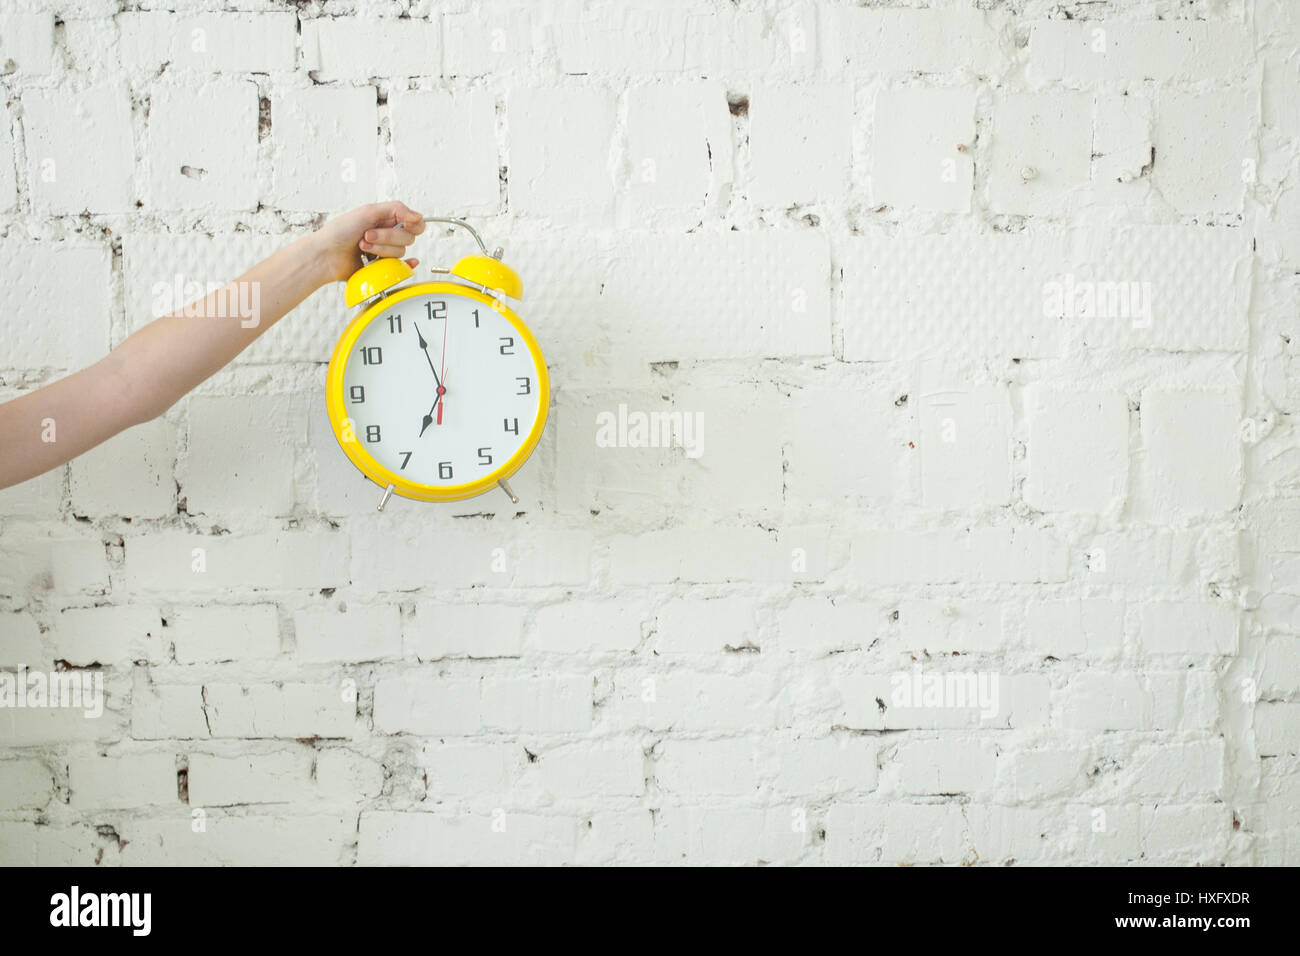 Girl holding yellow alarm clock in her hand isolated on white brick backgroung - Stock Image